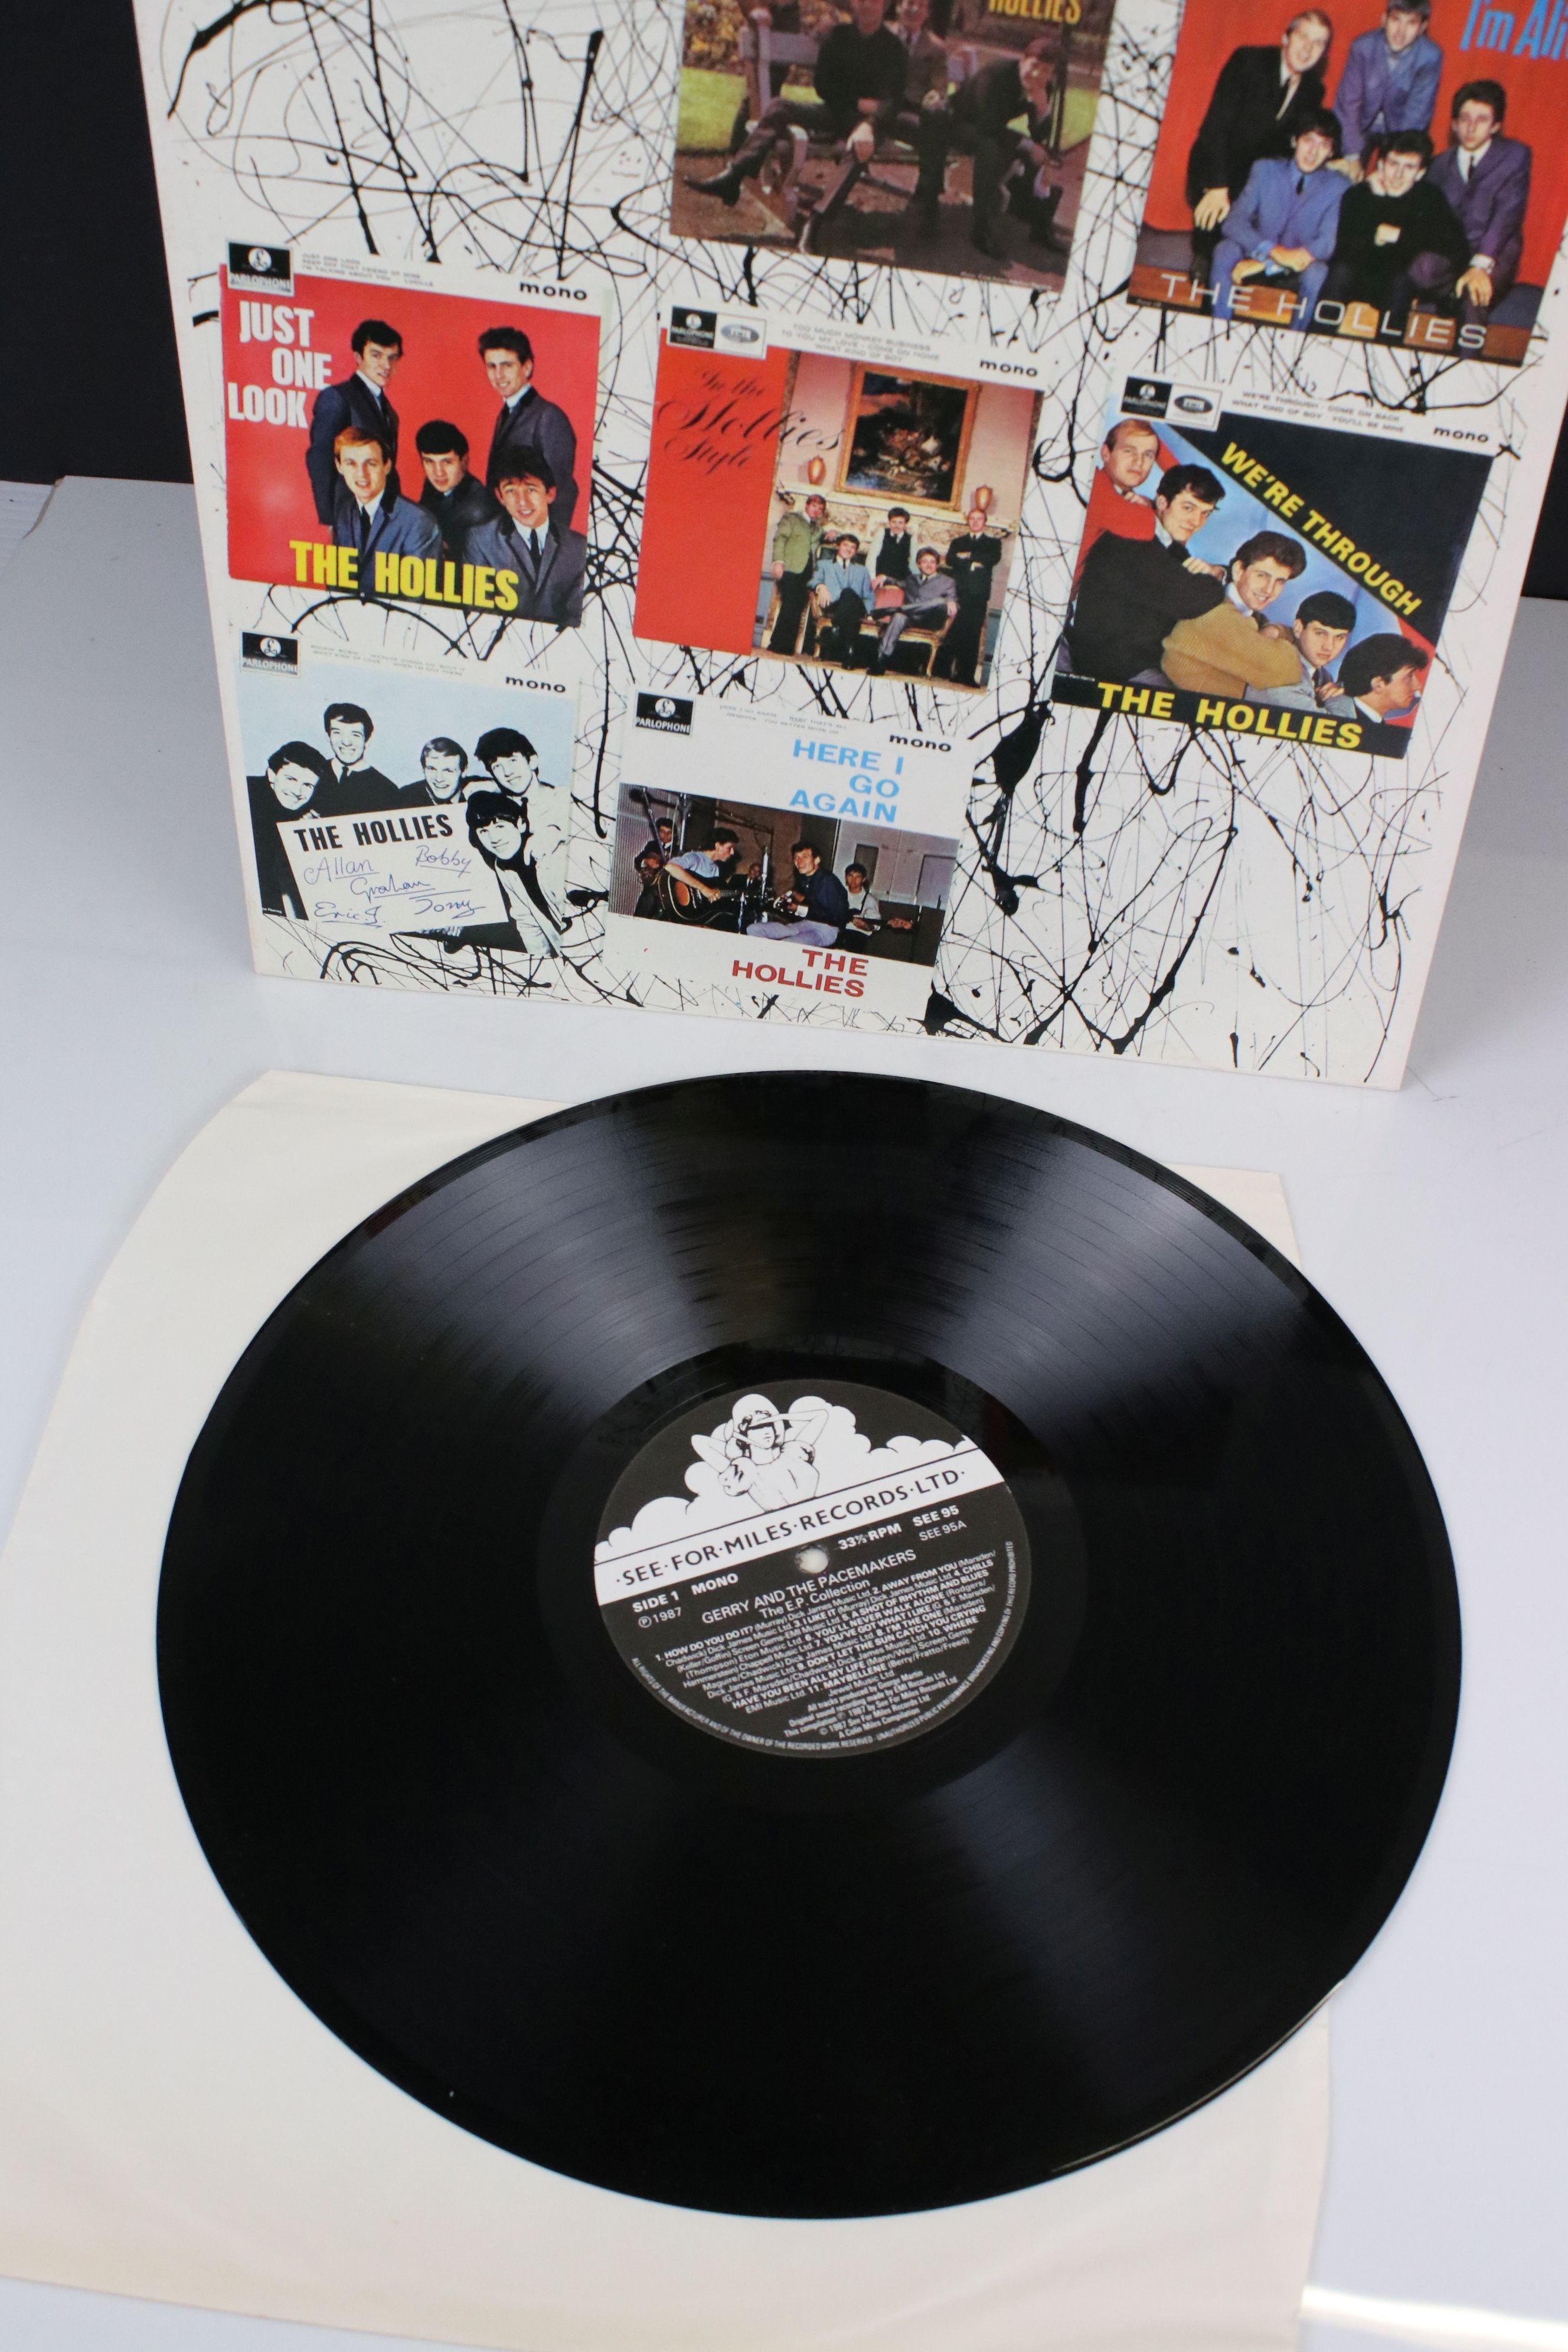 Vinyl - Three LPs on See For Miles Records to include The Hollies EP Collection SEE94, Gerry and the - Image 4 of 5